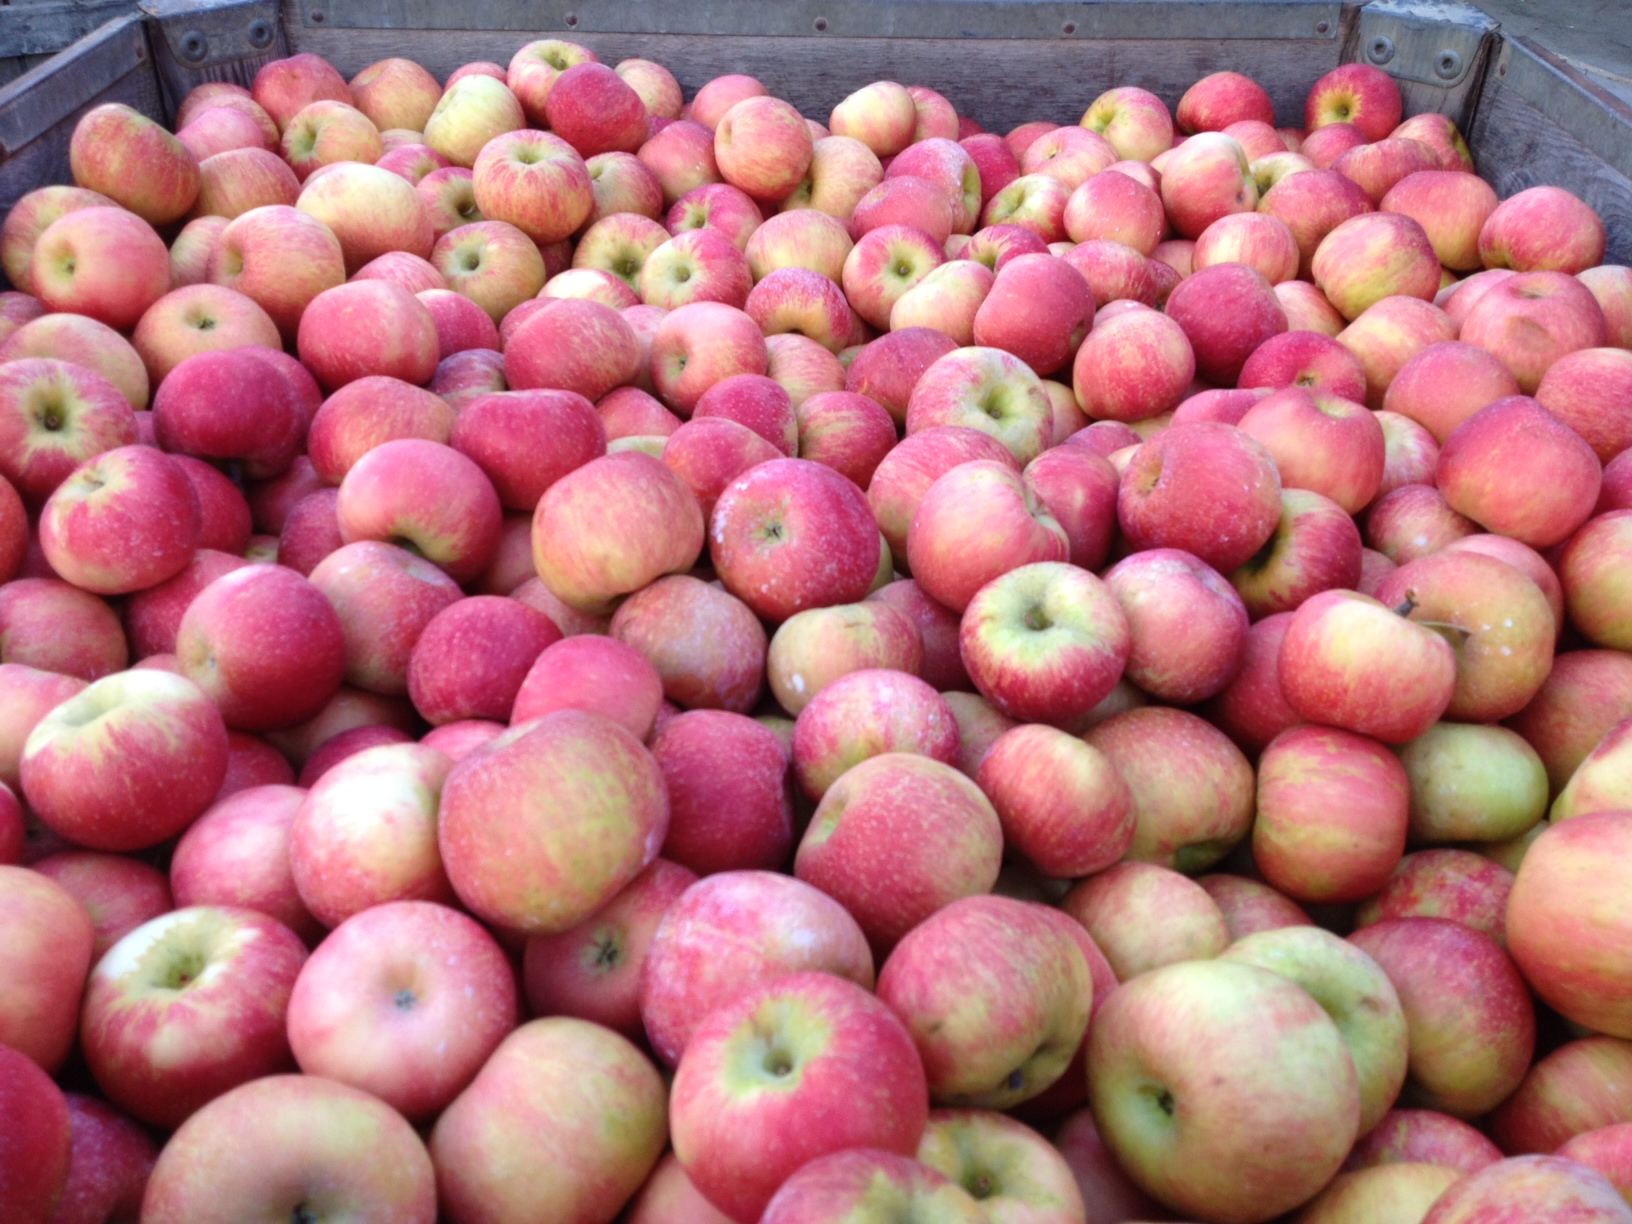 Bin of Honeycrisp apples